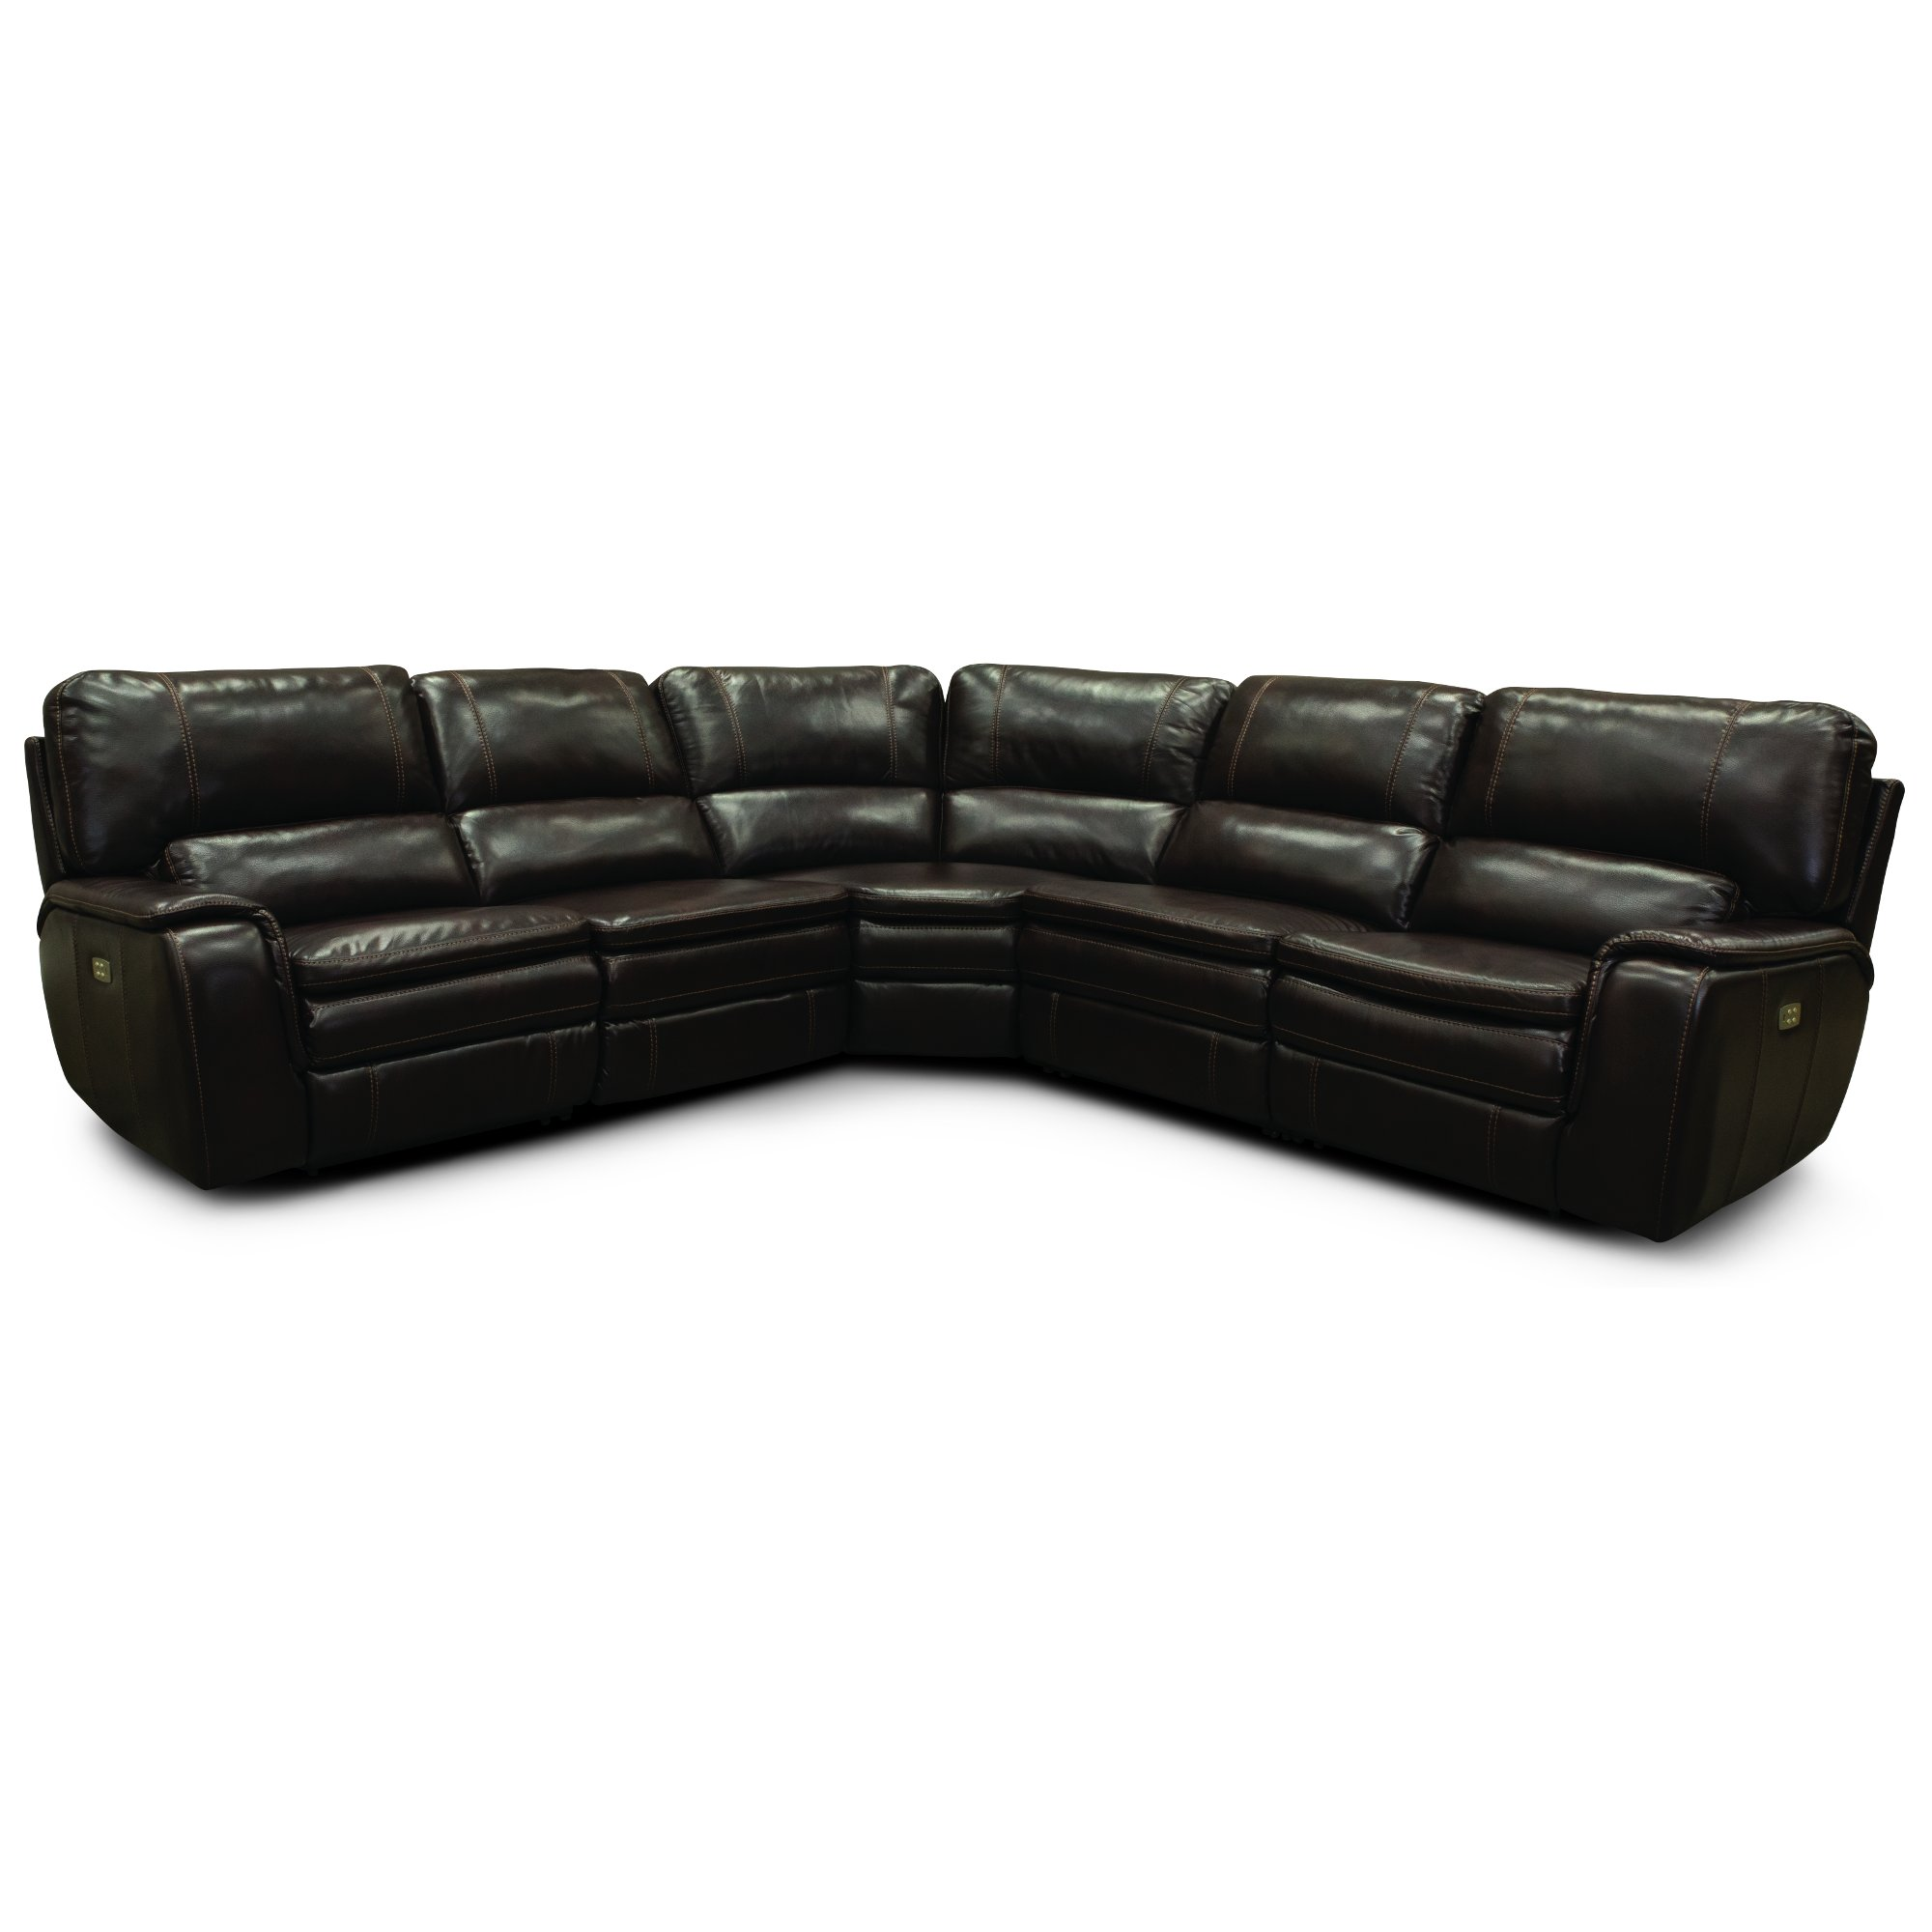 Brown 5 Piece Reclining Sectional Sofa Casey